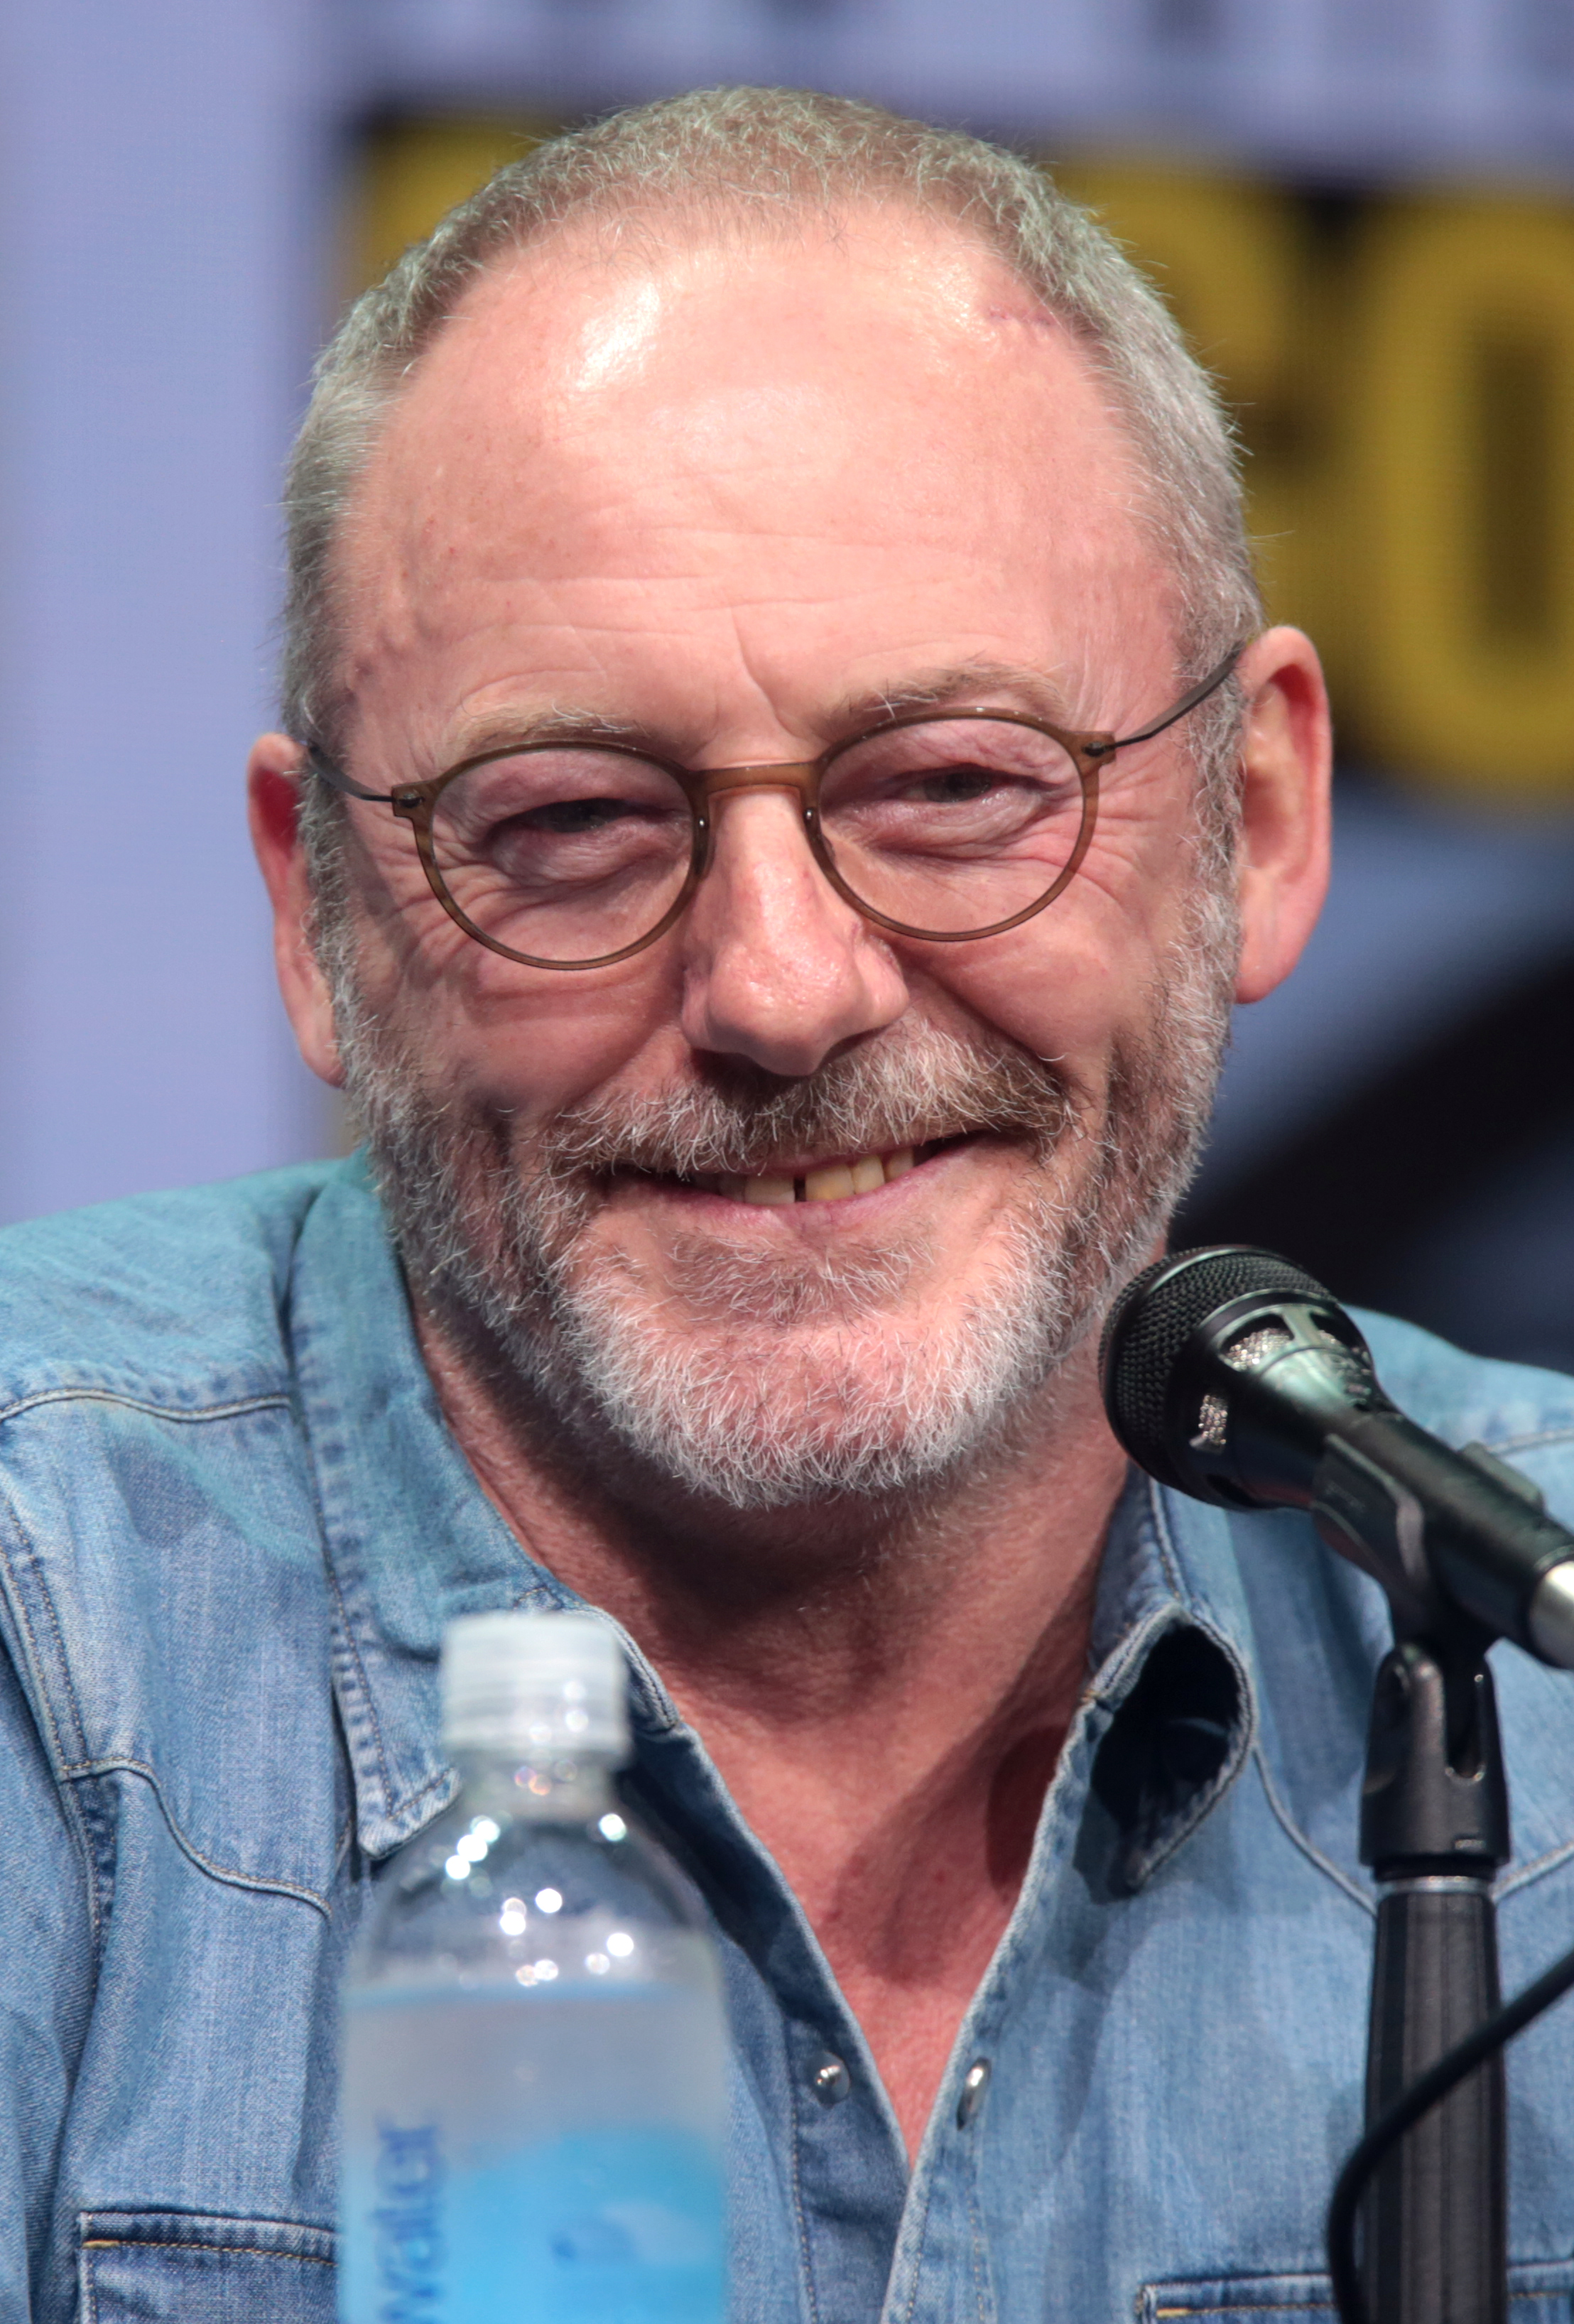 The 57-year old son of father (?) and mother(?) Liam Cunningham in 2018 photo. Liam Cunningham earned a  million dollar salary - leaving the net worth at 12 million in 2018